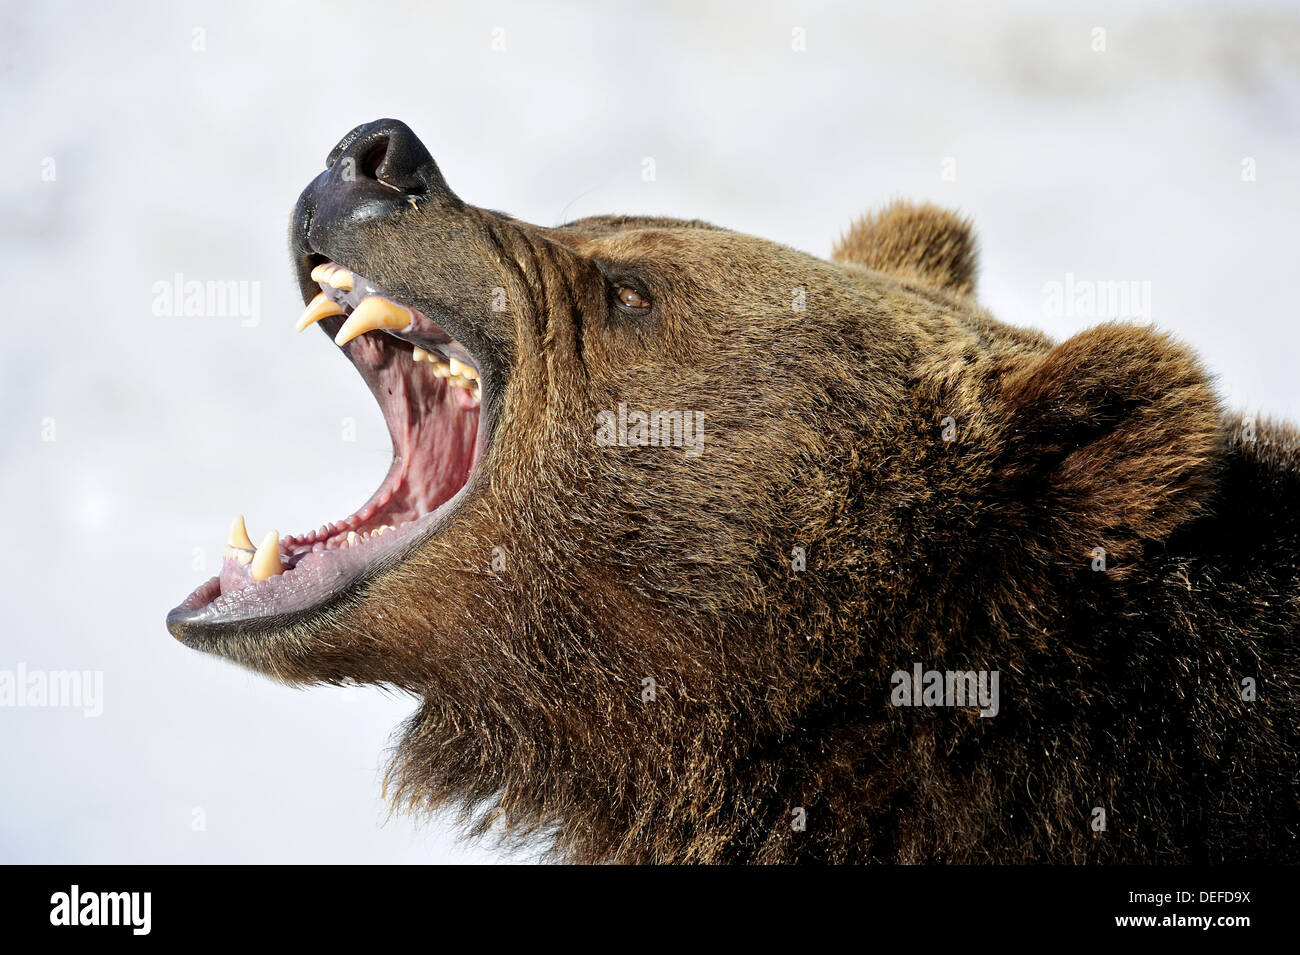 Grizzly bear Ursus arctos - captive snarling - Stock Image